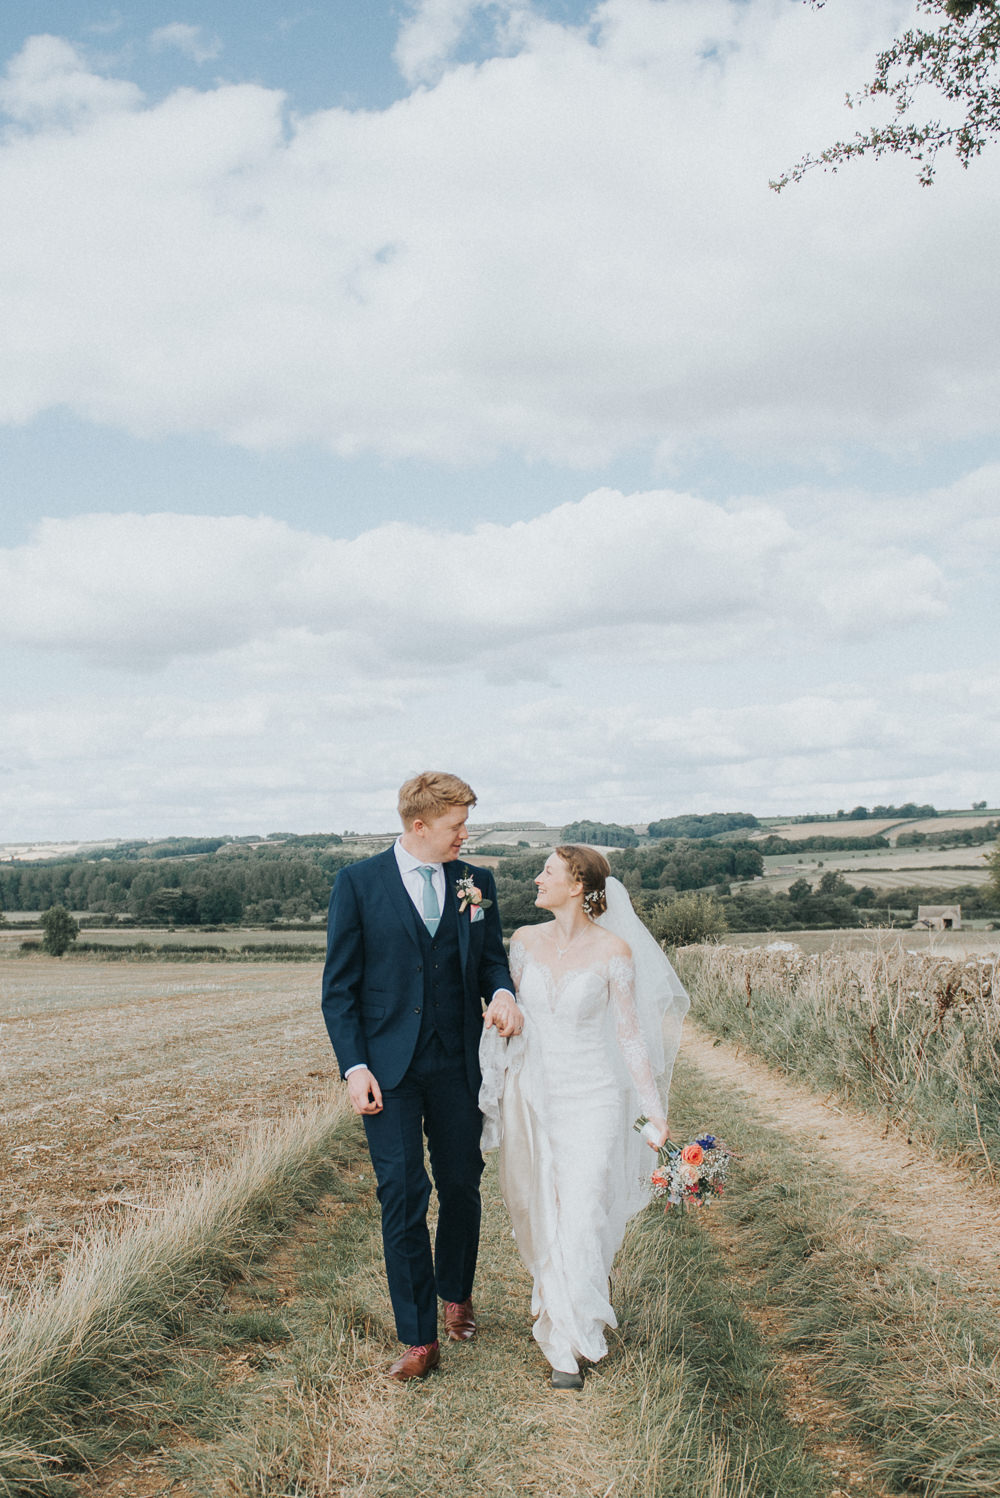 Navy Suit Groom Teal Tie Countryside Wedding Cotswolds Kate Waters Photography